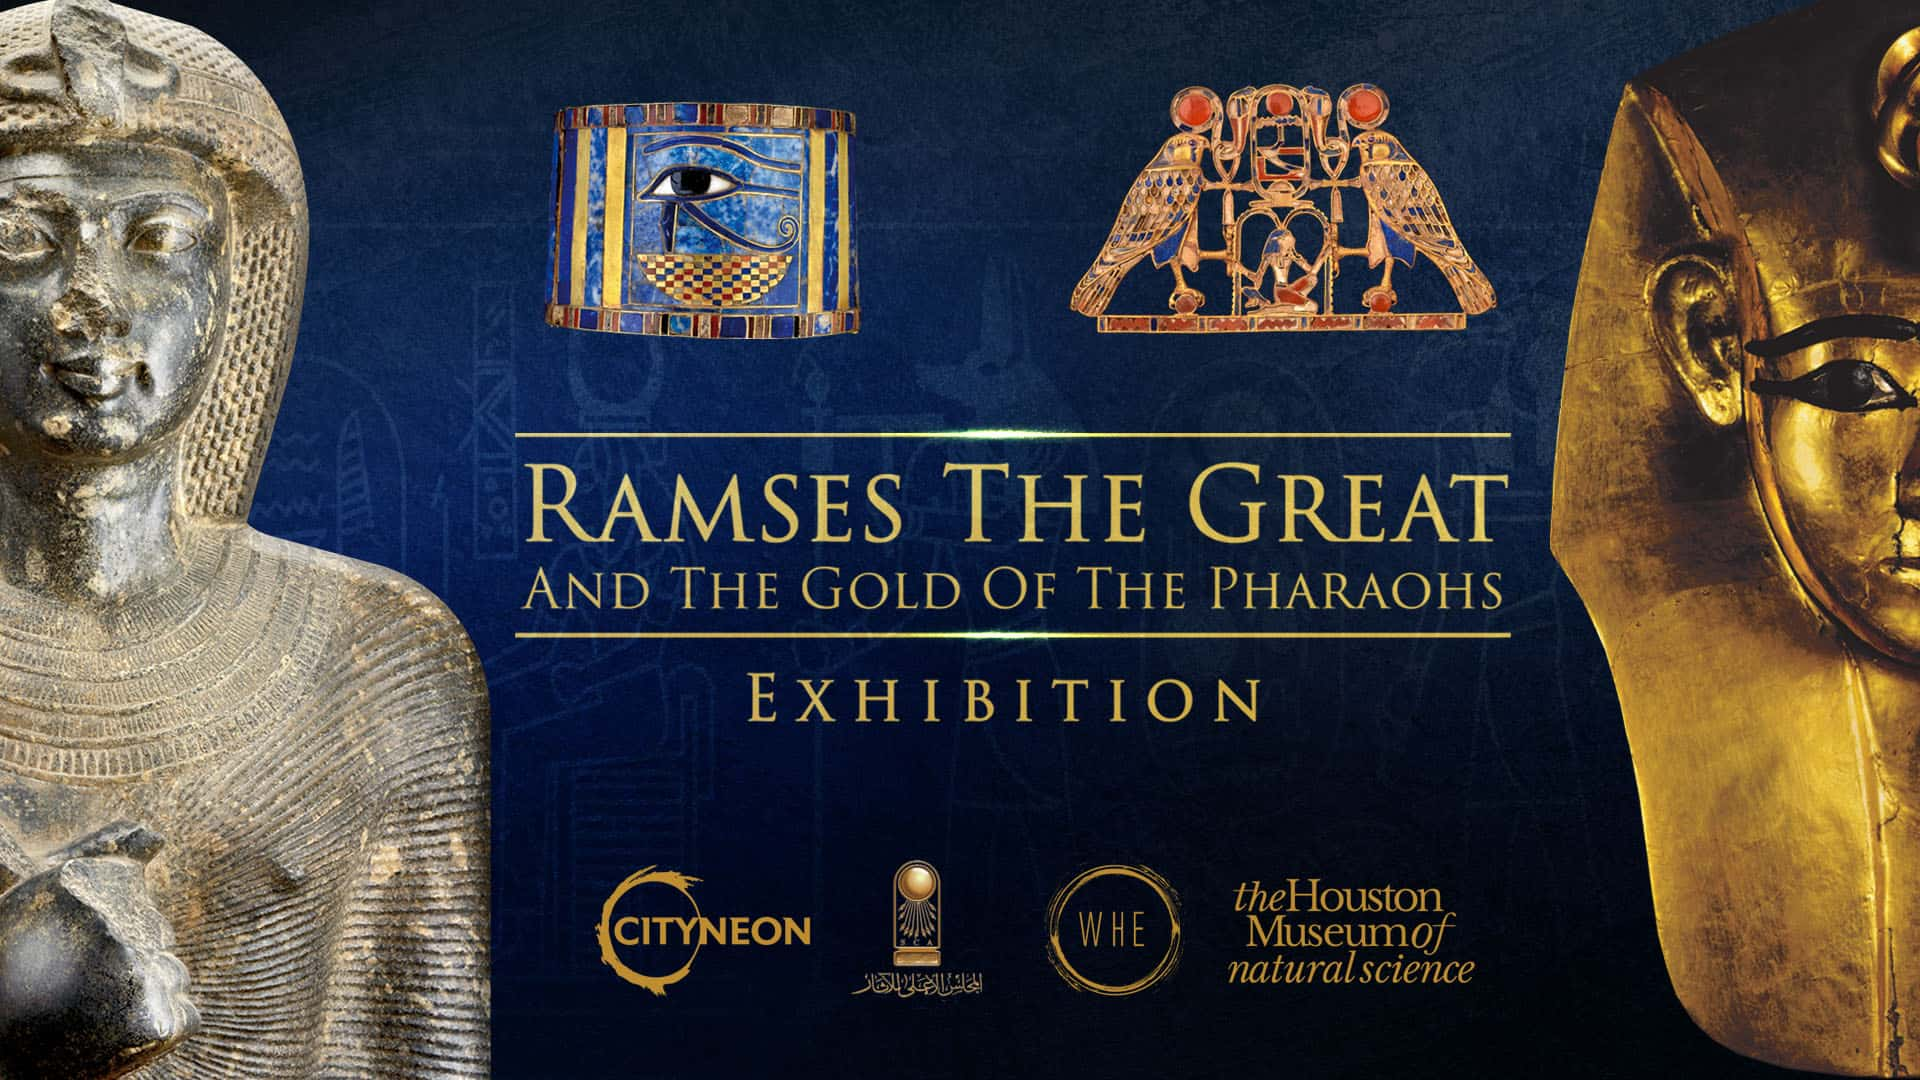 Cityneon Ramses exhibition